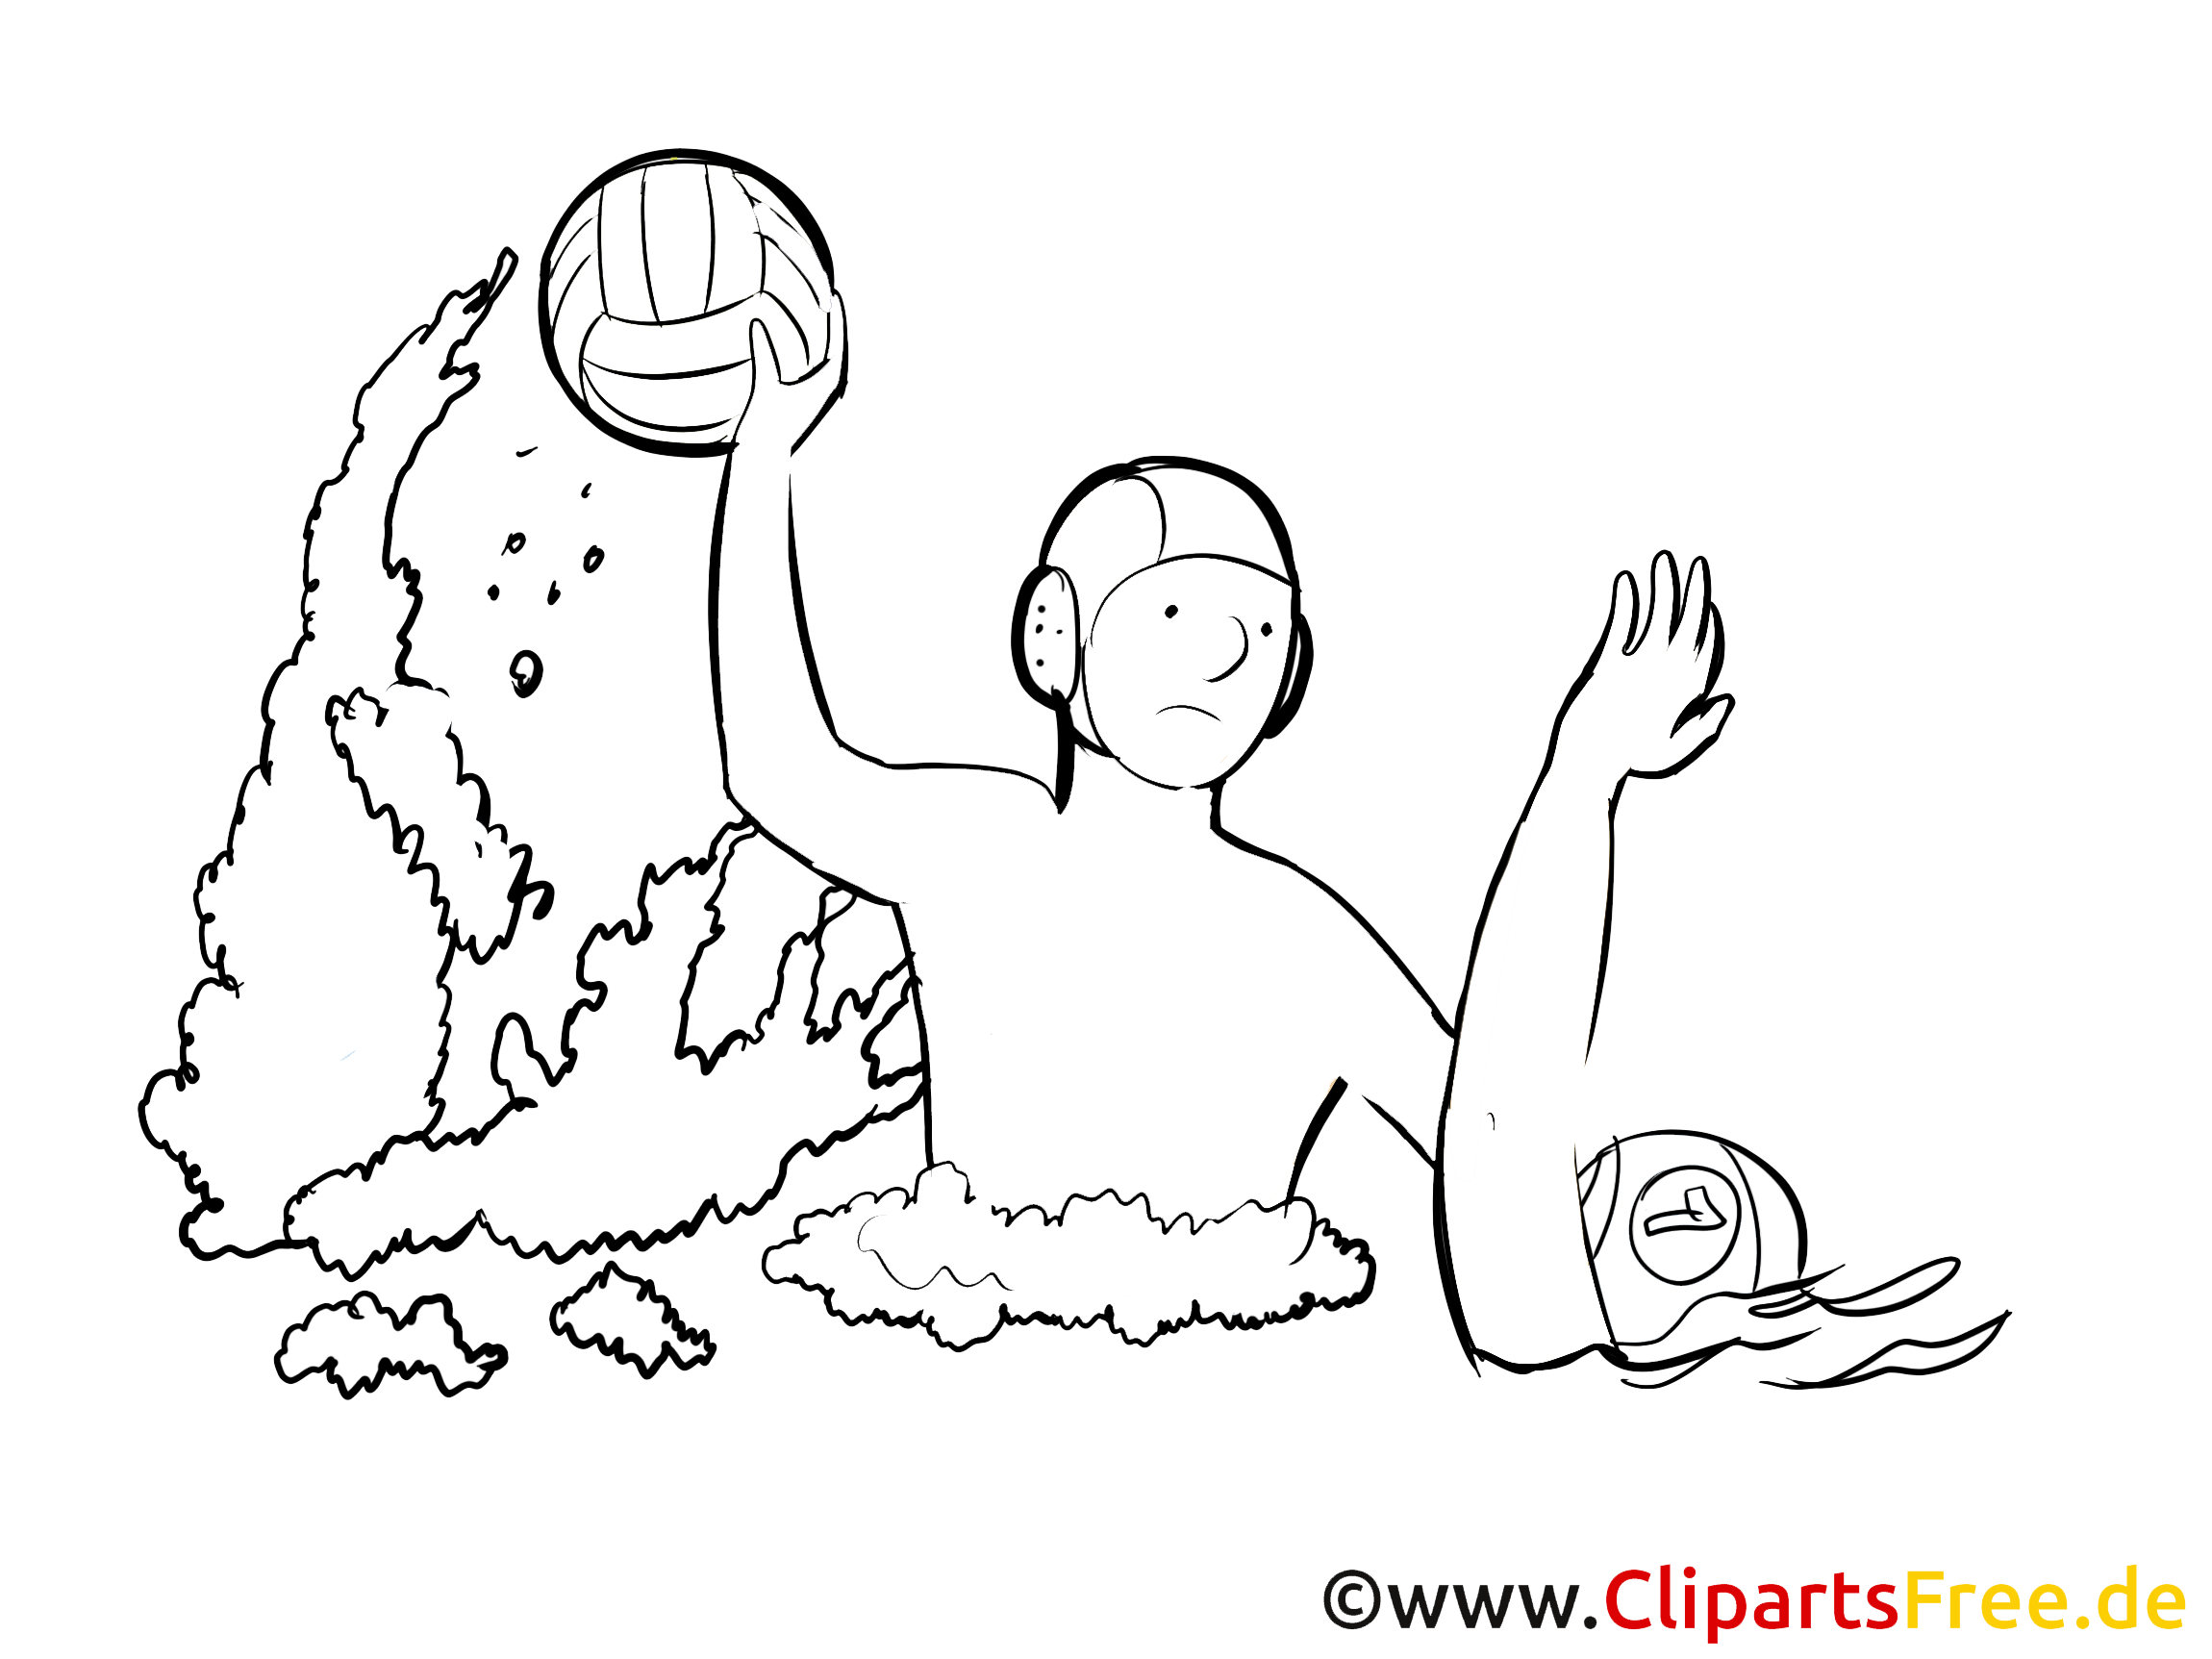 Water-polo illustration – Sport à imprimer